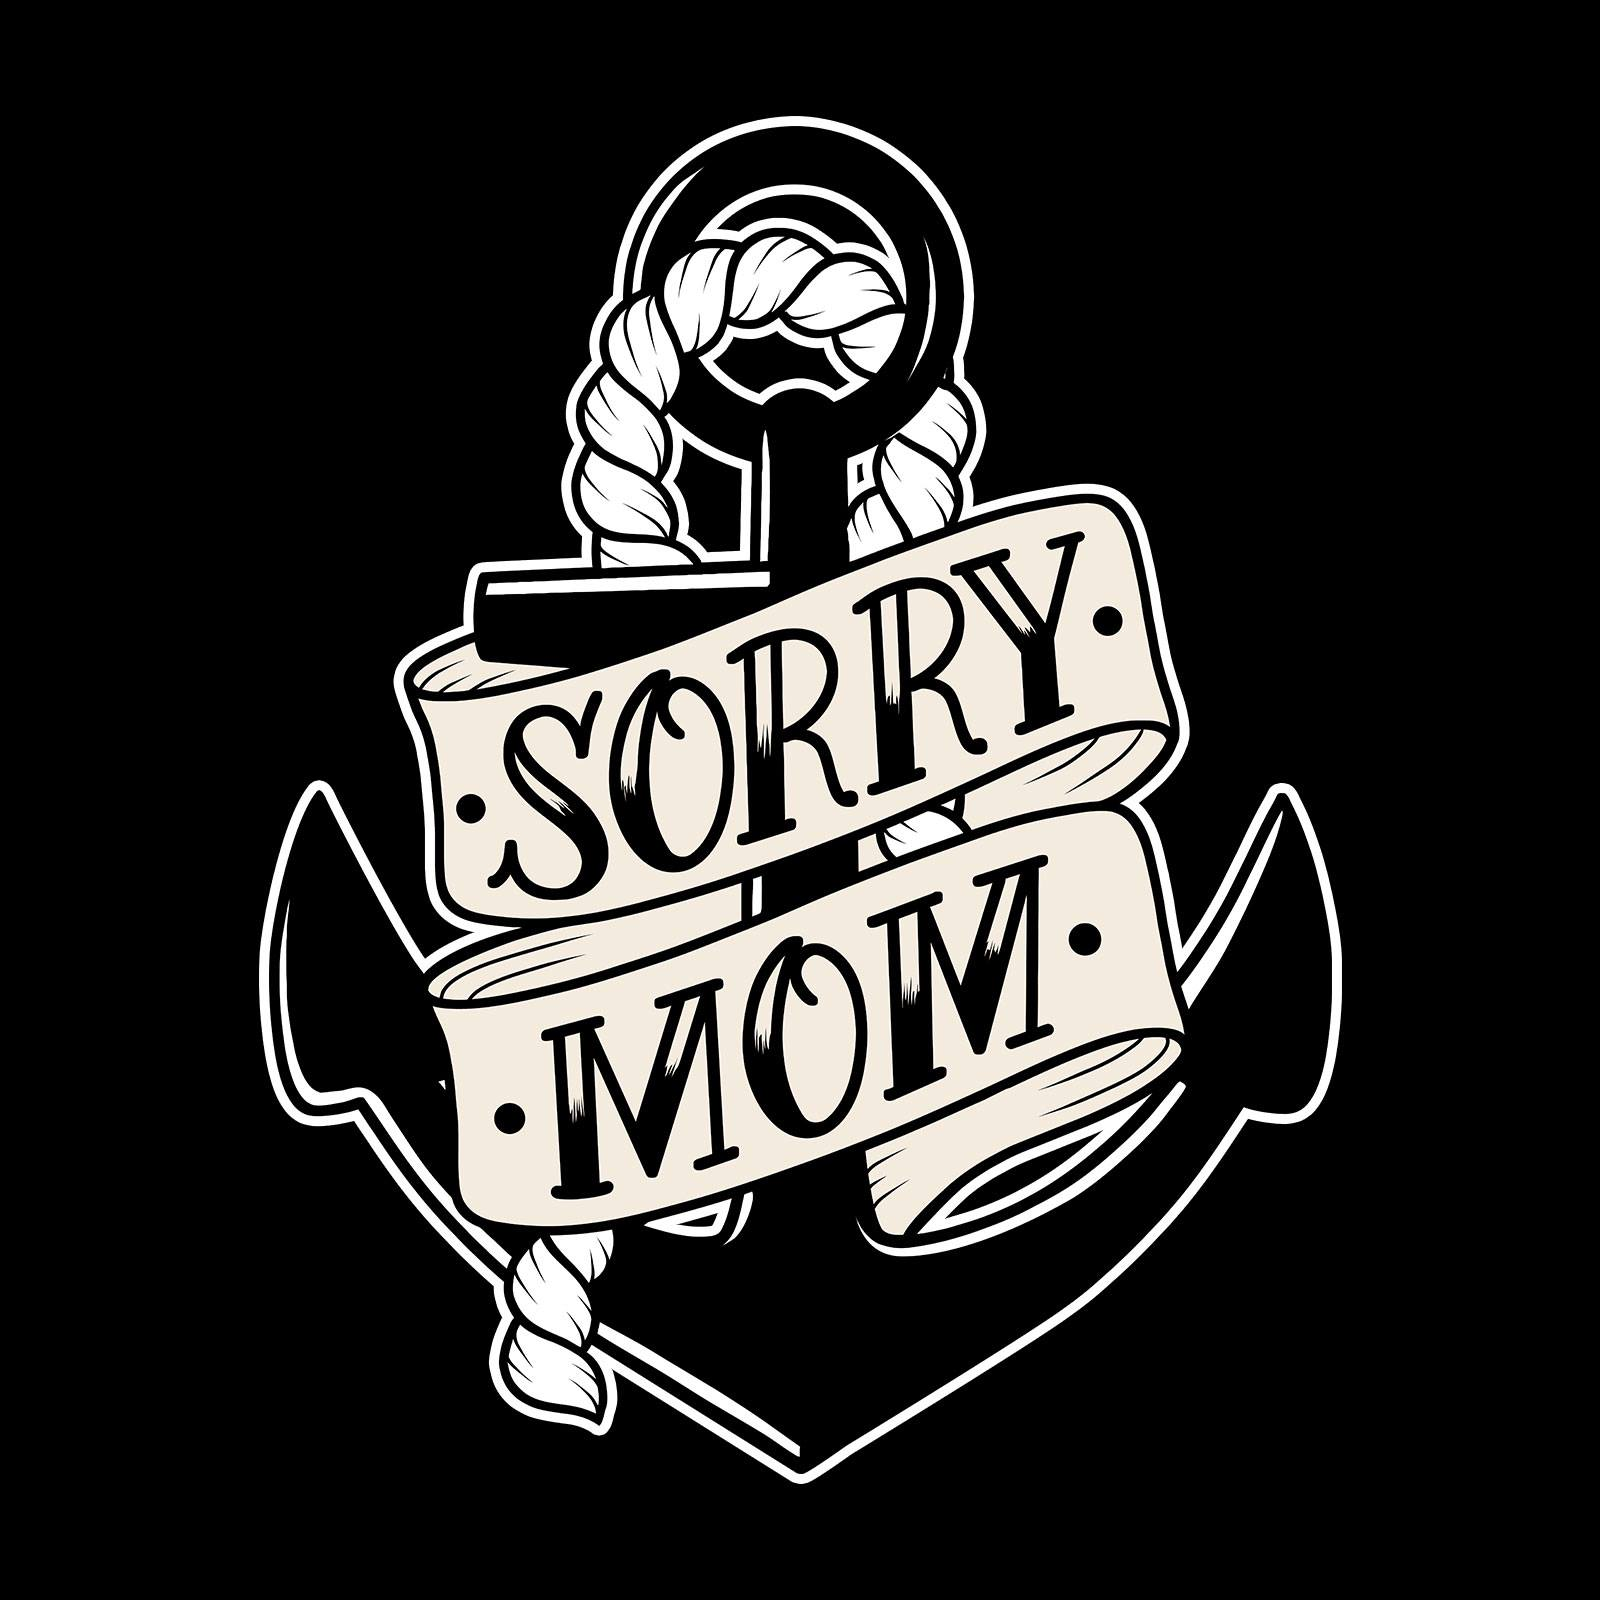 Ink Mania - Sorry Mom